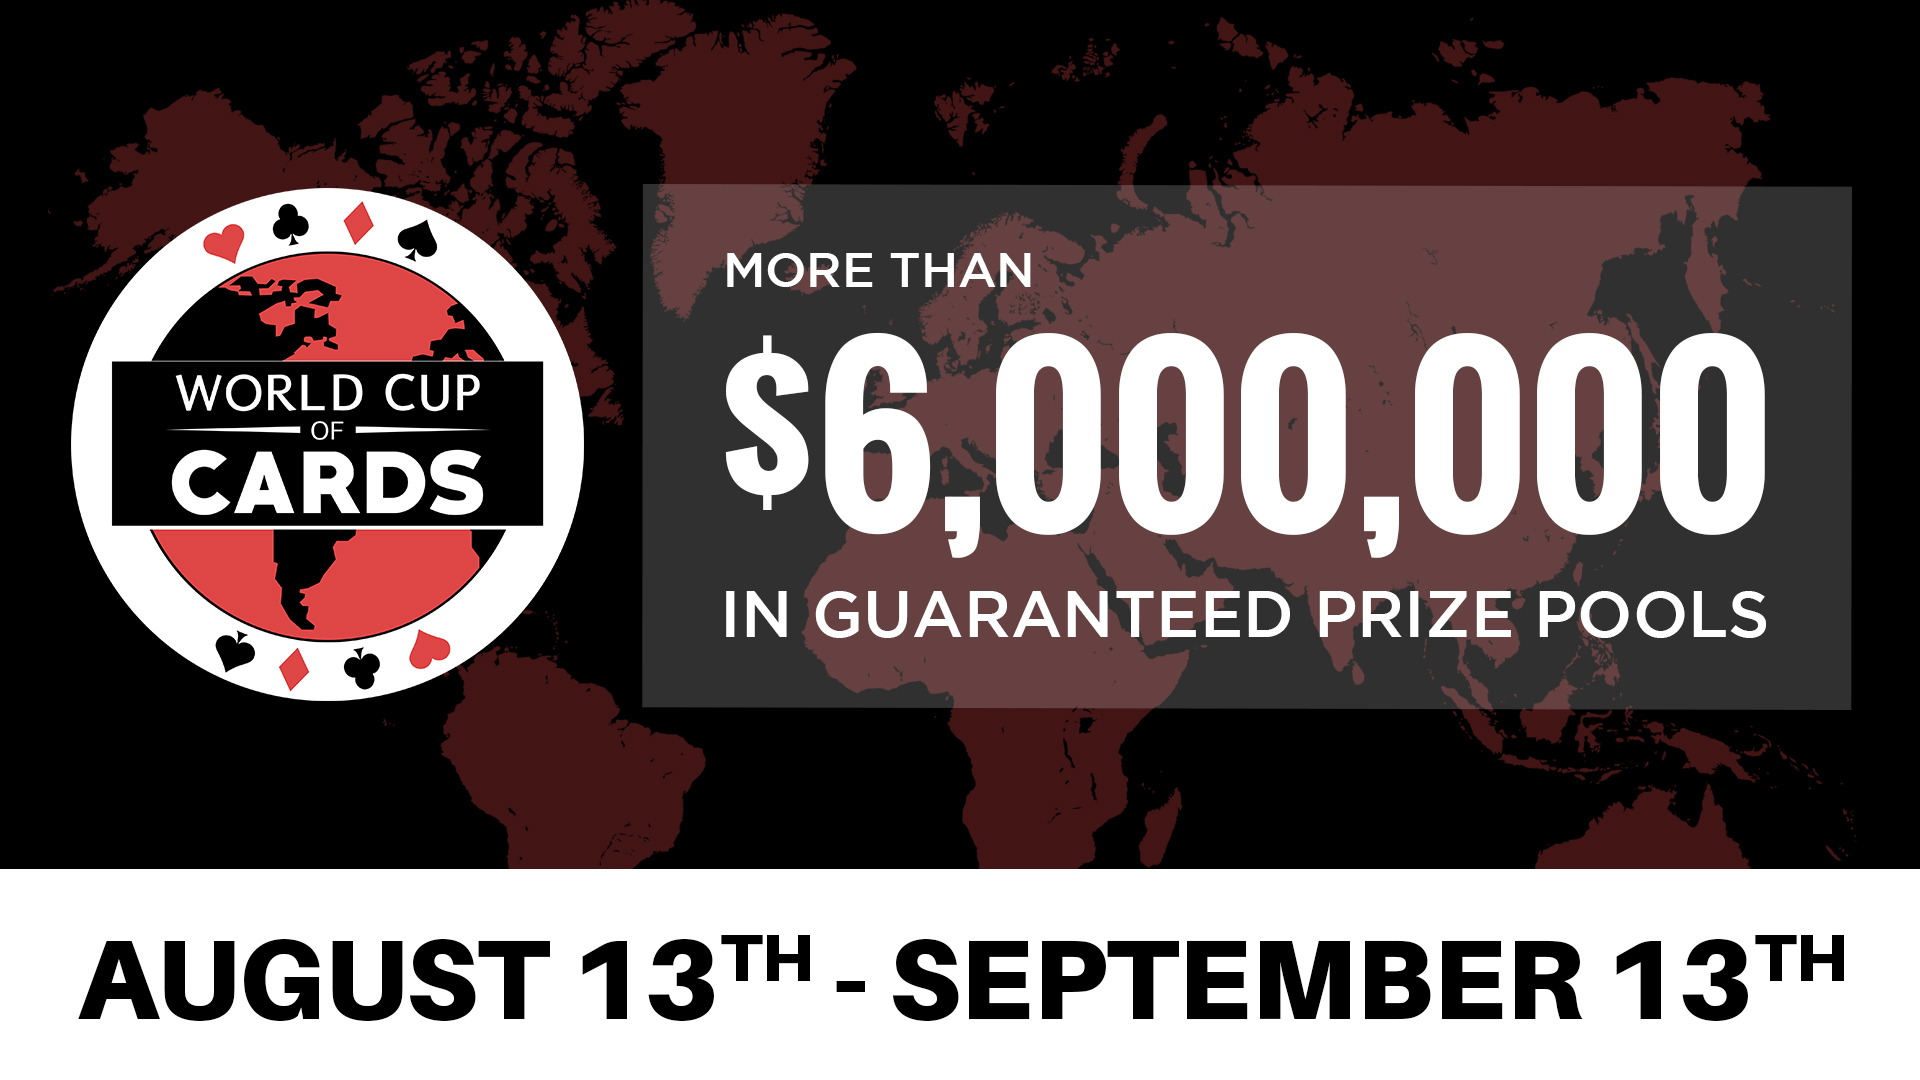 The World Cup of Cards returns to Playground Poker Club